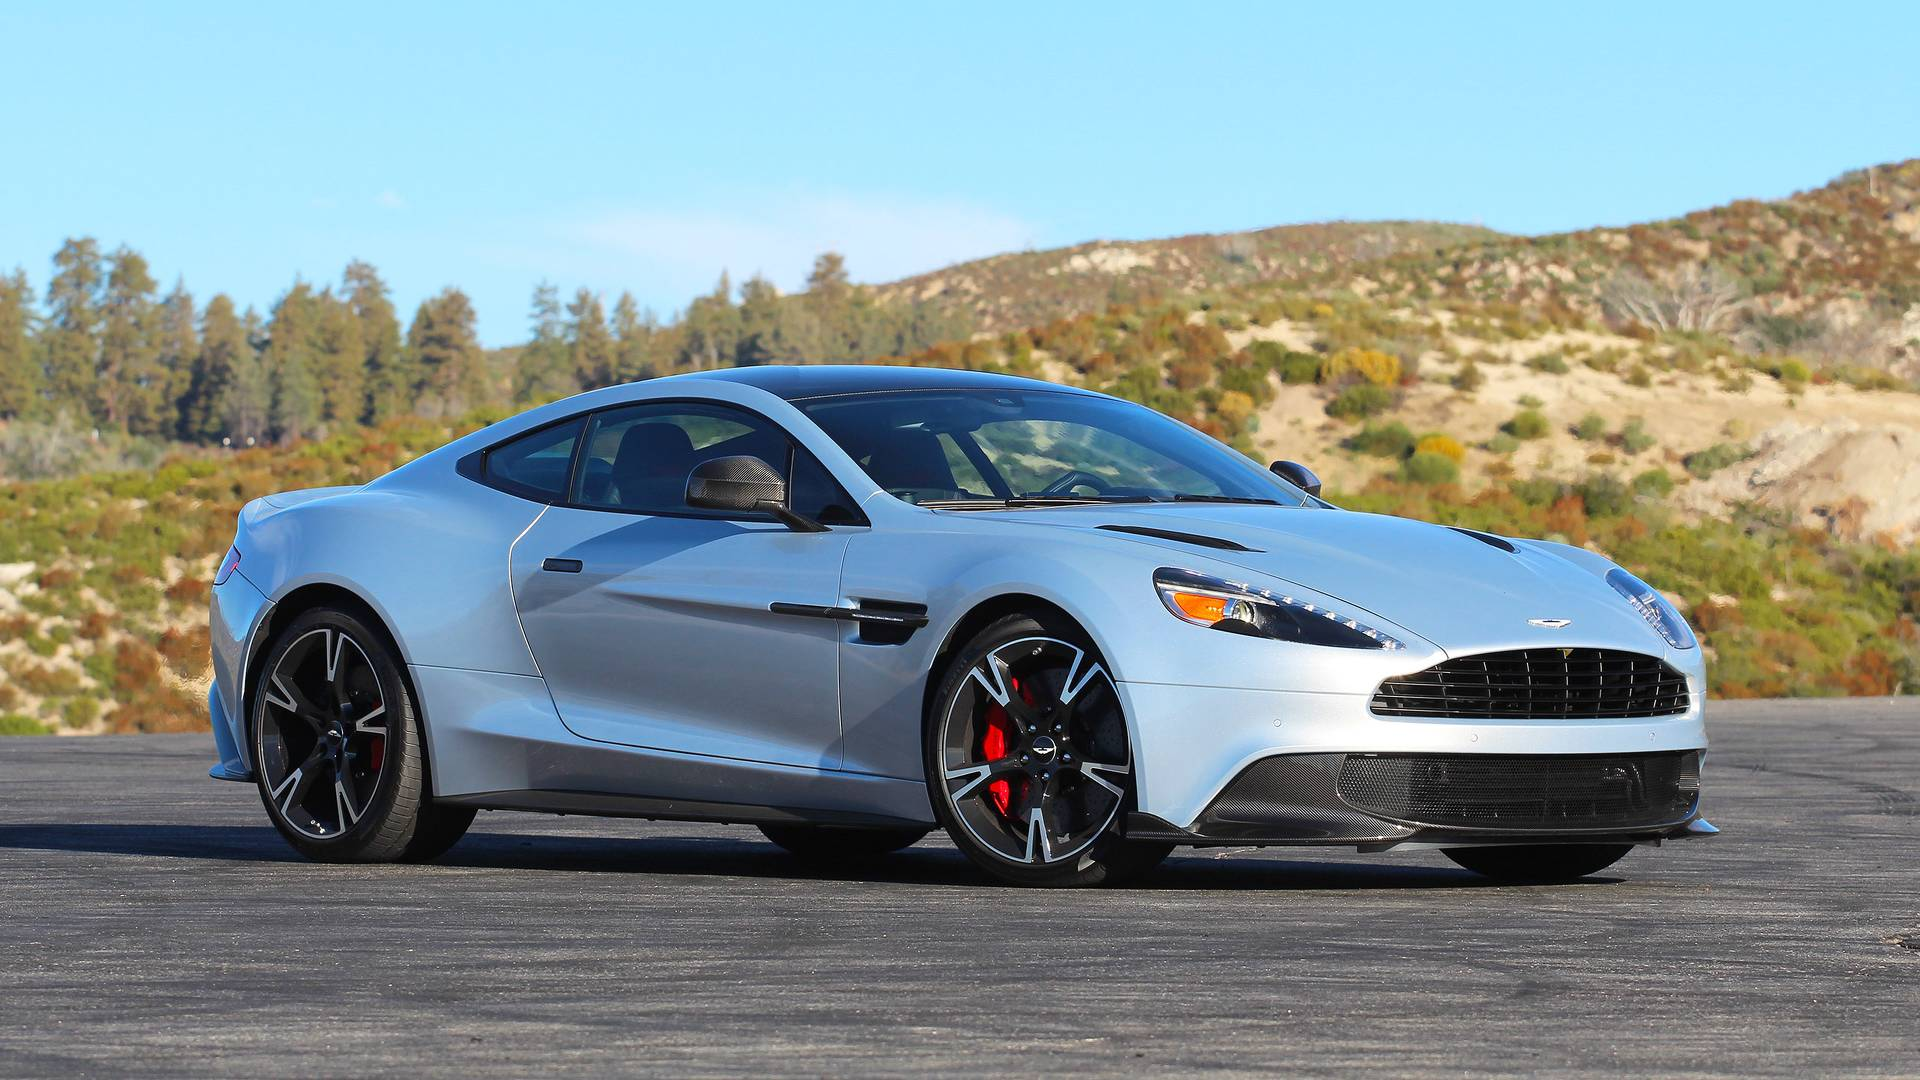 2018 Aston Martin Vanquish S Coupe Review Going Out With A Bang 1920x1080